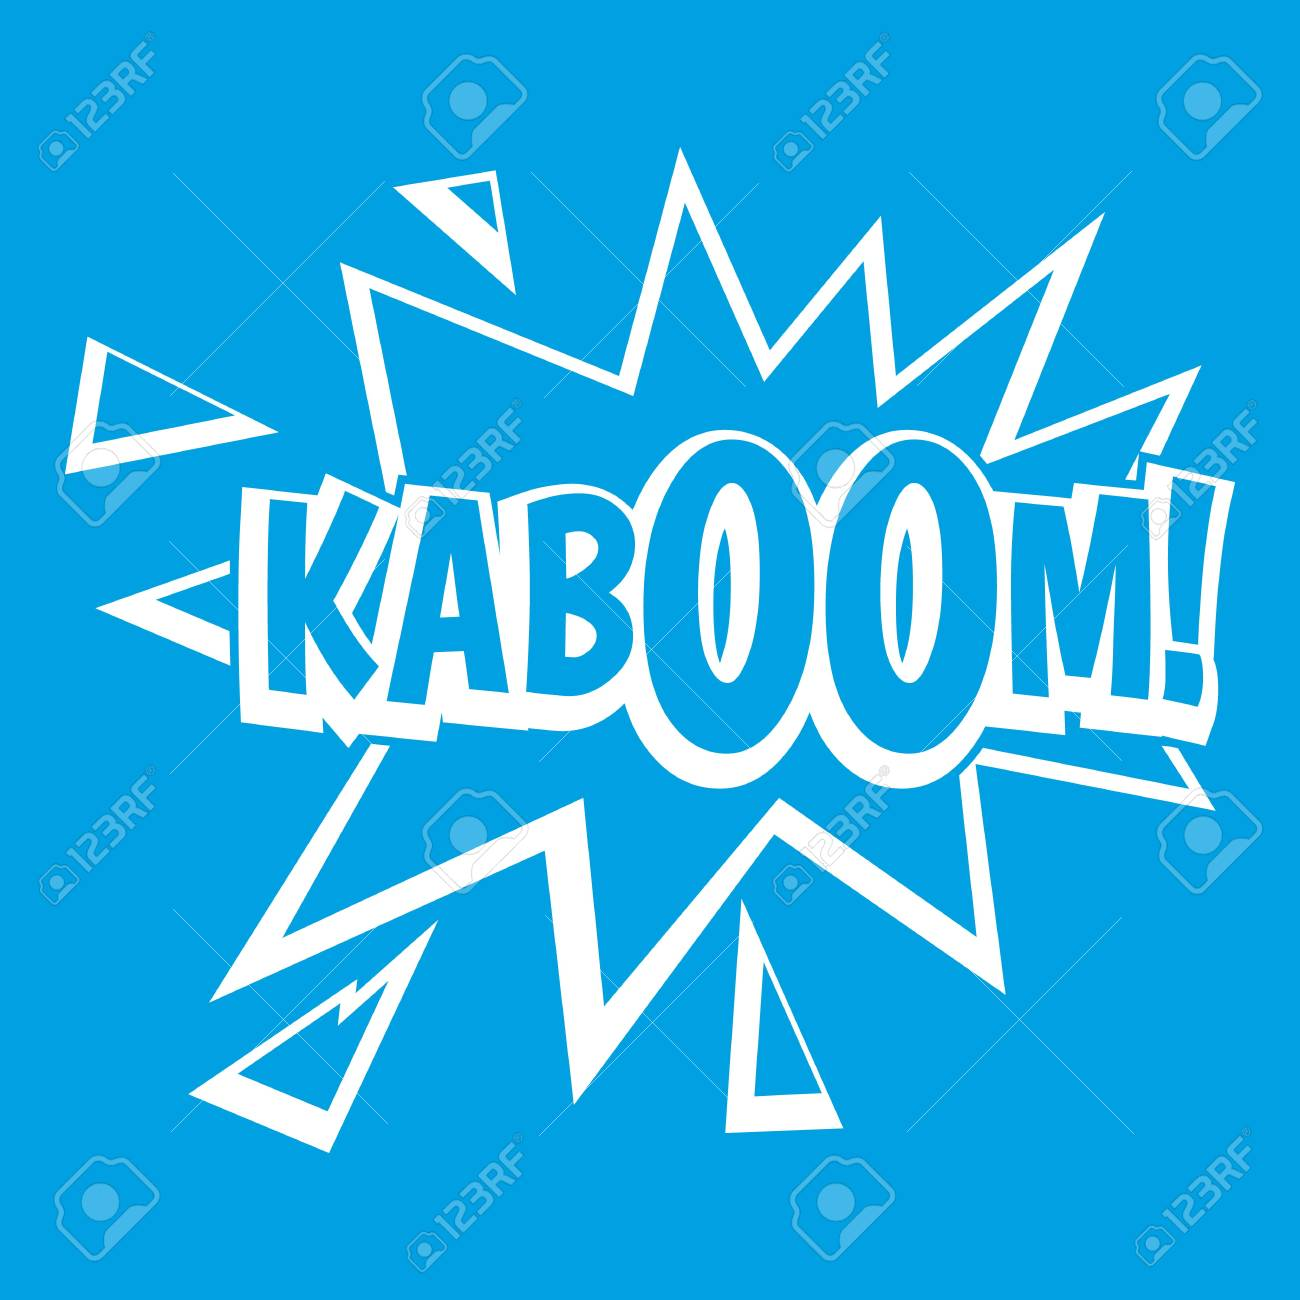 Kaboom Explosion Icon White Isolated On Blue Background Vector 1300x1300